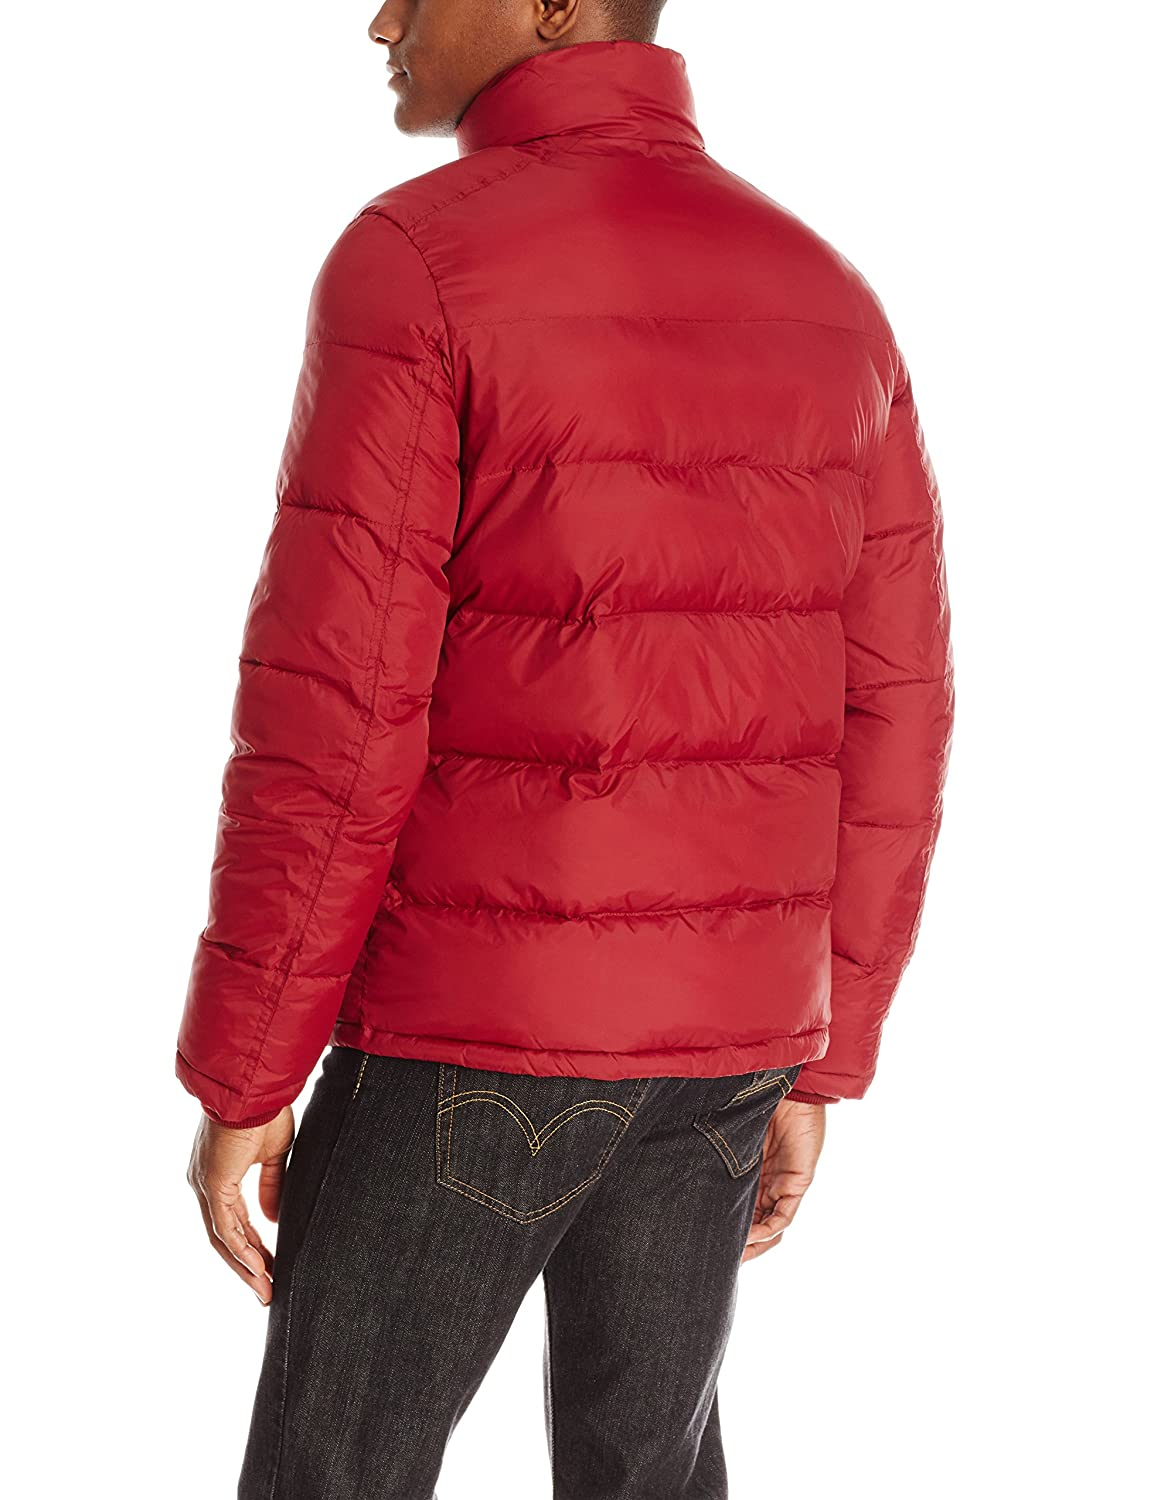 Tommy Hilfiger Mens Classic Puffer Jacket